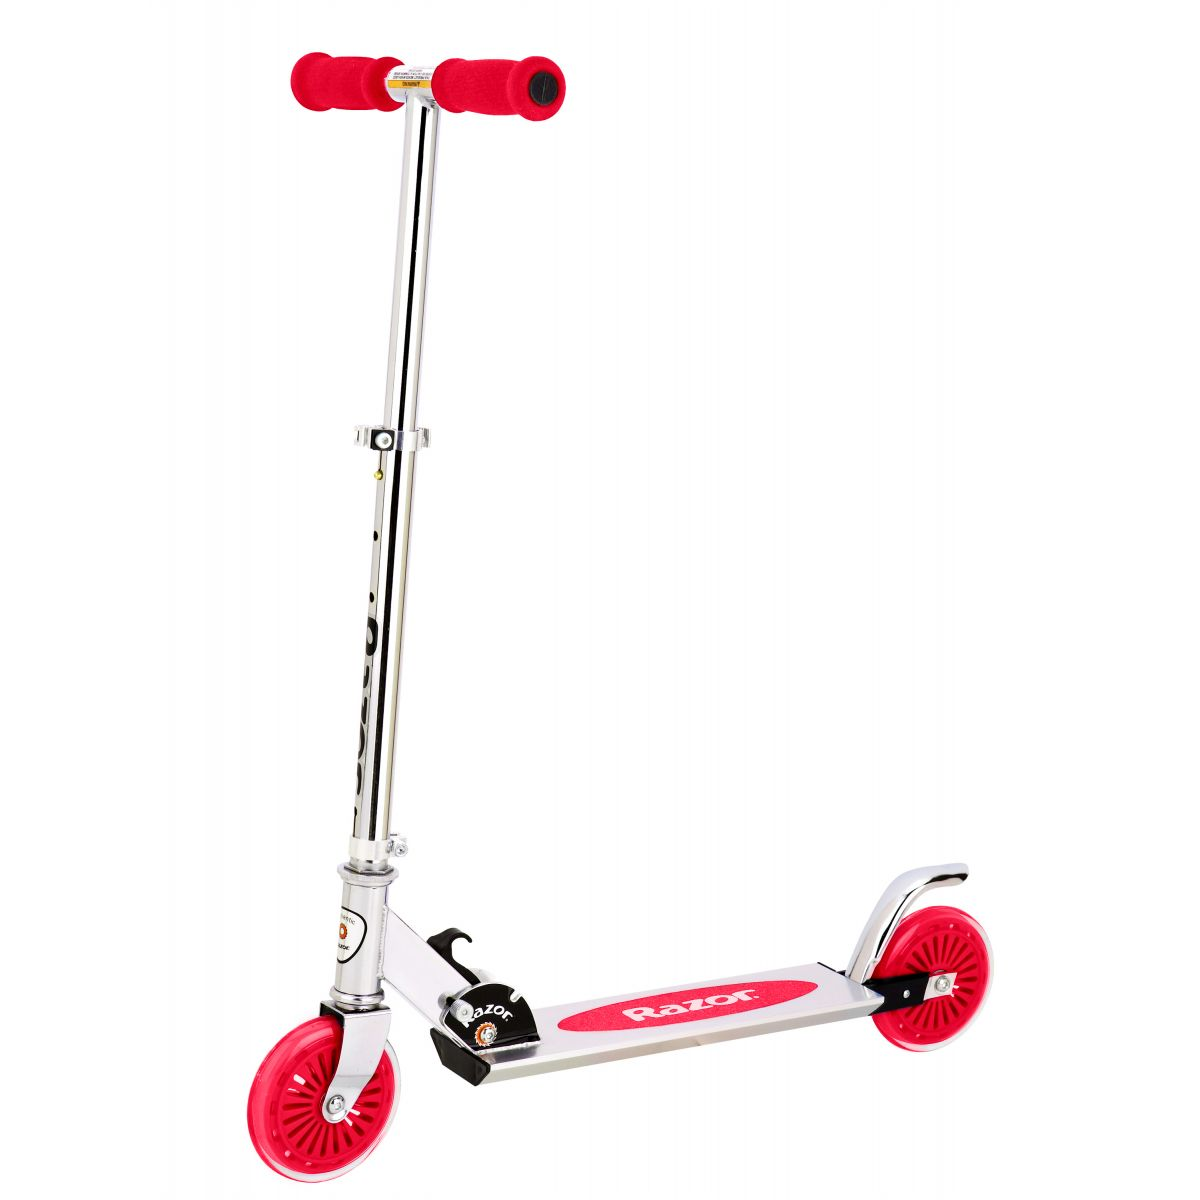 Razor Koloběžka Scooter w/125mm wheels Red EU